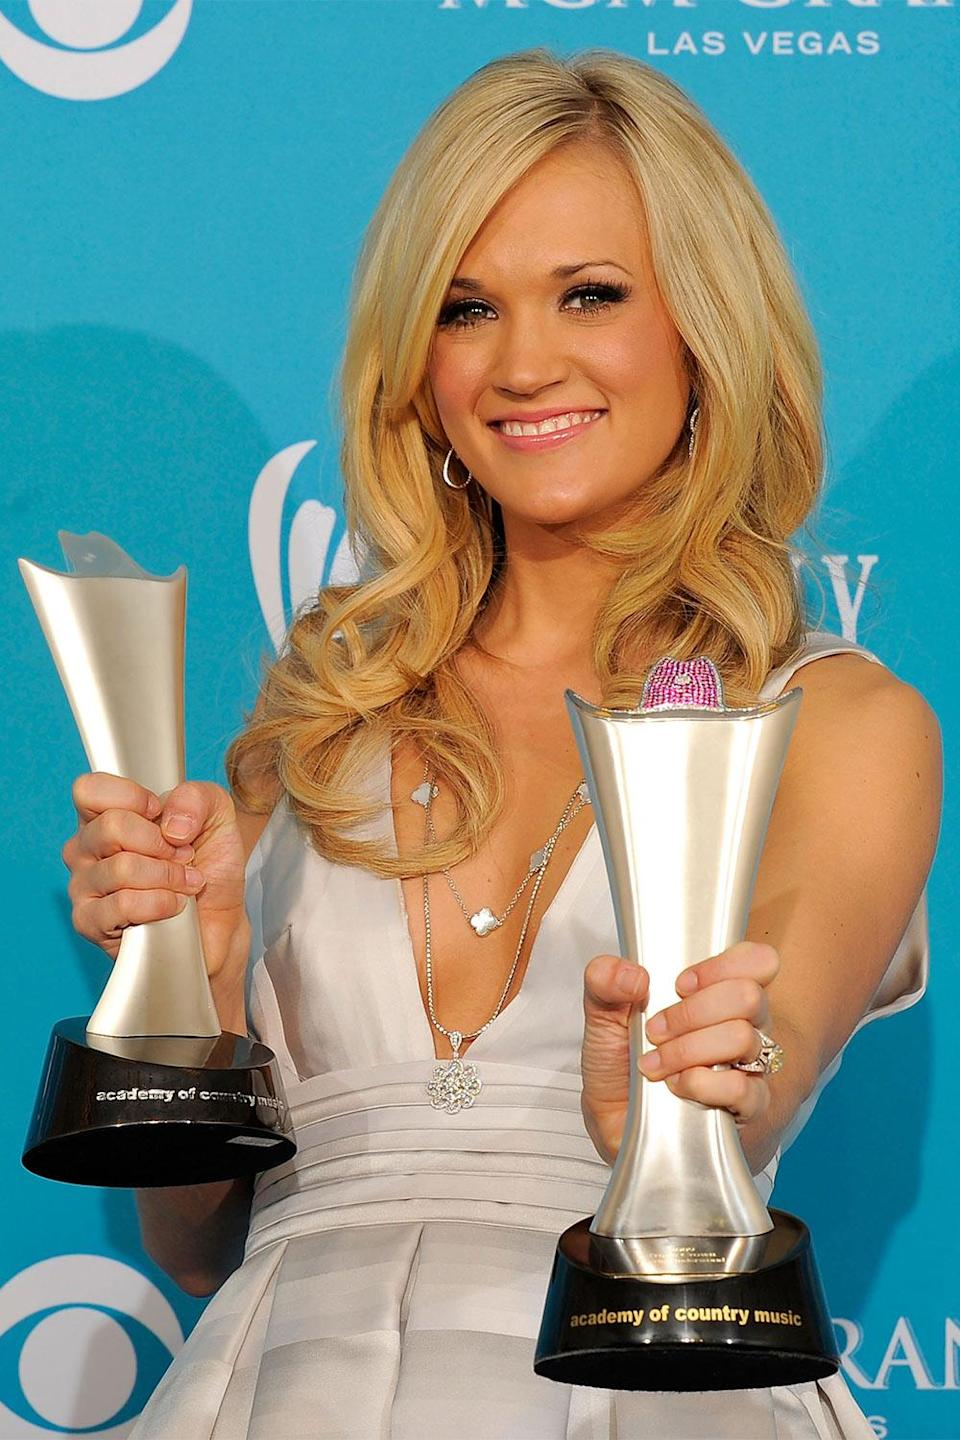 <p>She impressively went back-to-back, rising to the top of a packed field that included seven other nominees: Zac Brown Band, Kenny Chesney, Toby Keith, Brad Paisley, George Strait, Taylor Swift and Keith Urban.</p>